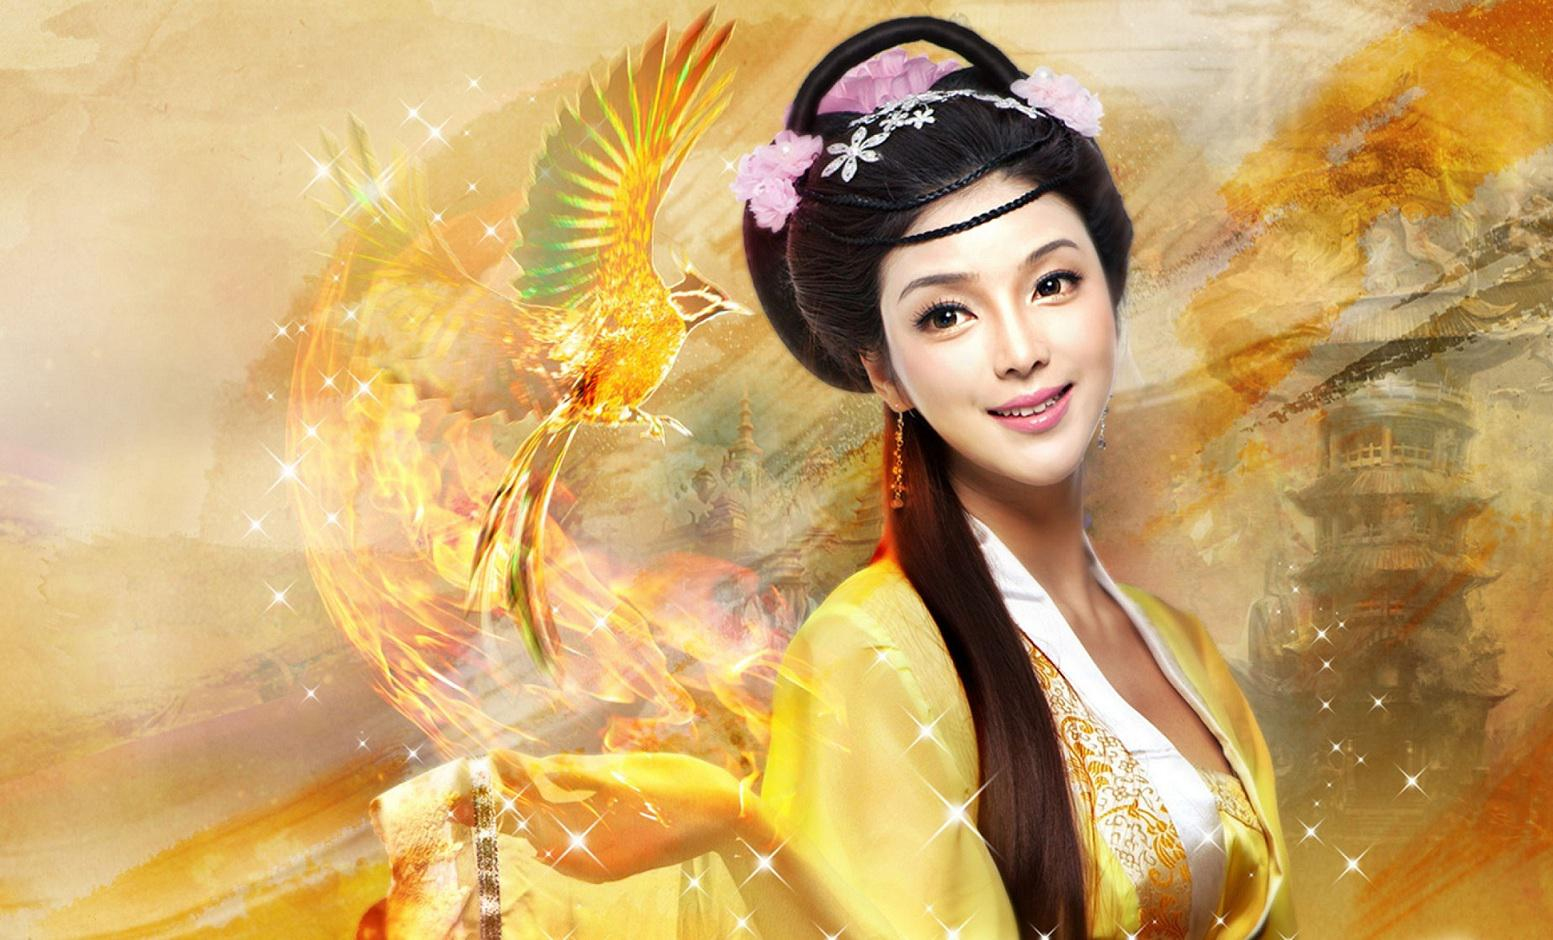 Geisha and phoenix   93895   High Quality and Resolution Wallpapers 1553x940